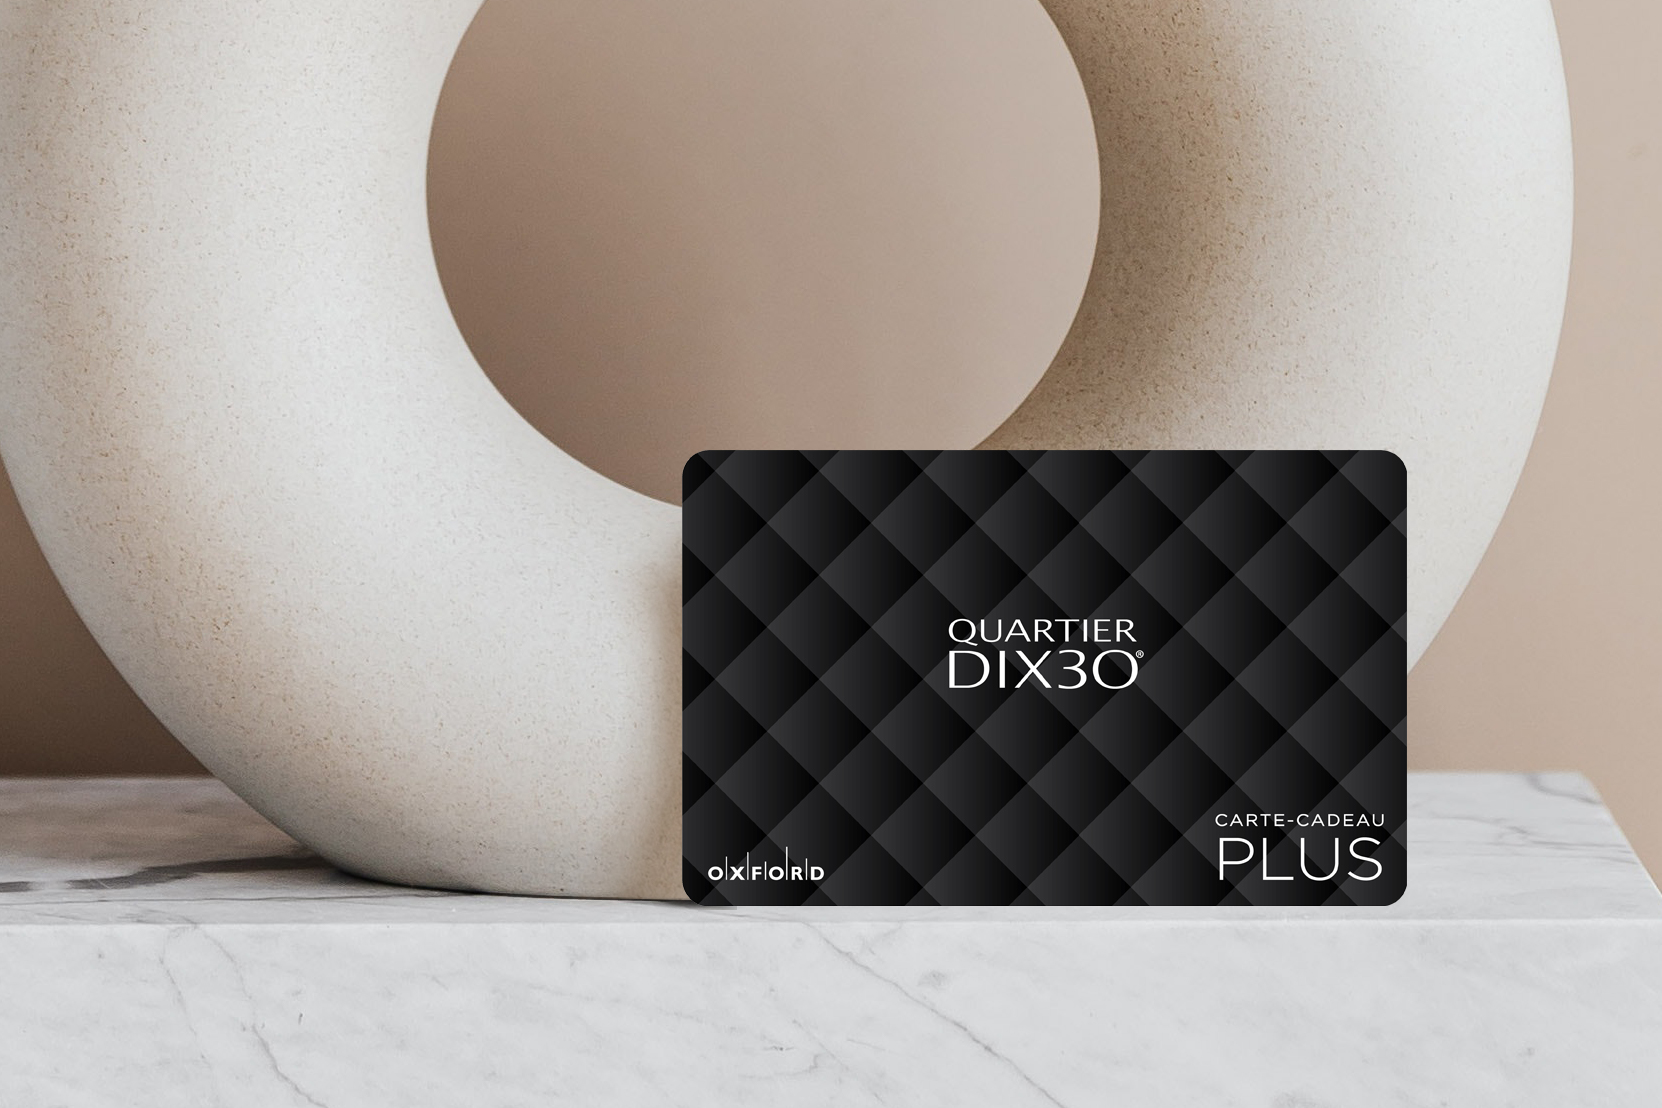 DIX30 gift card and vase